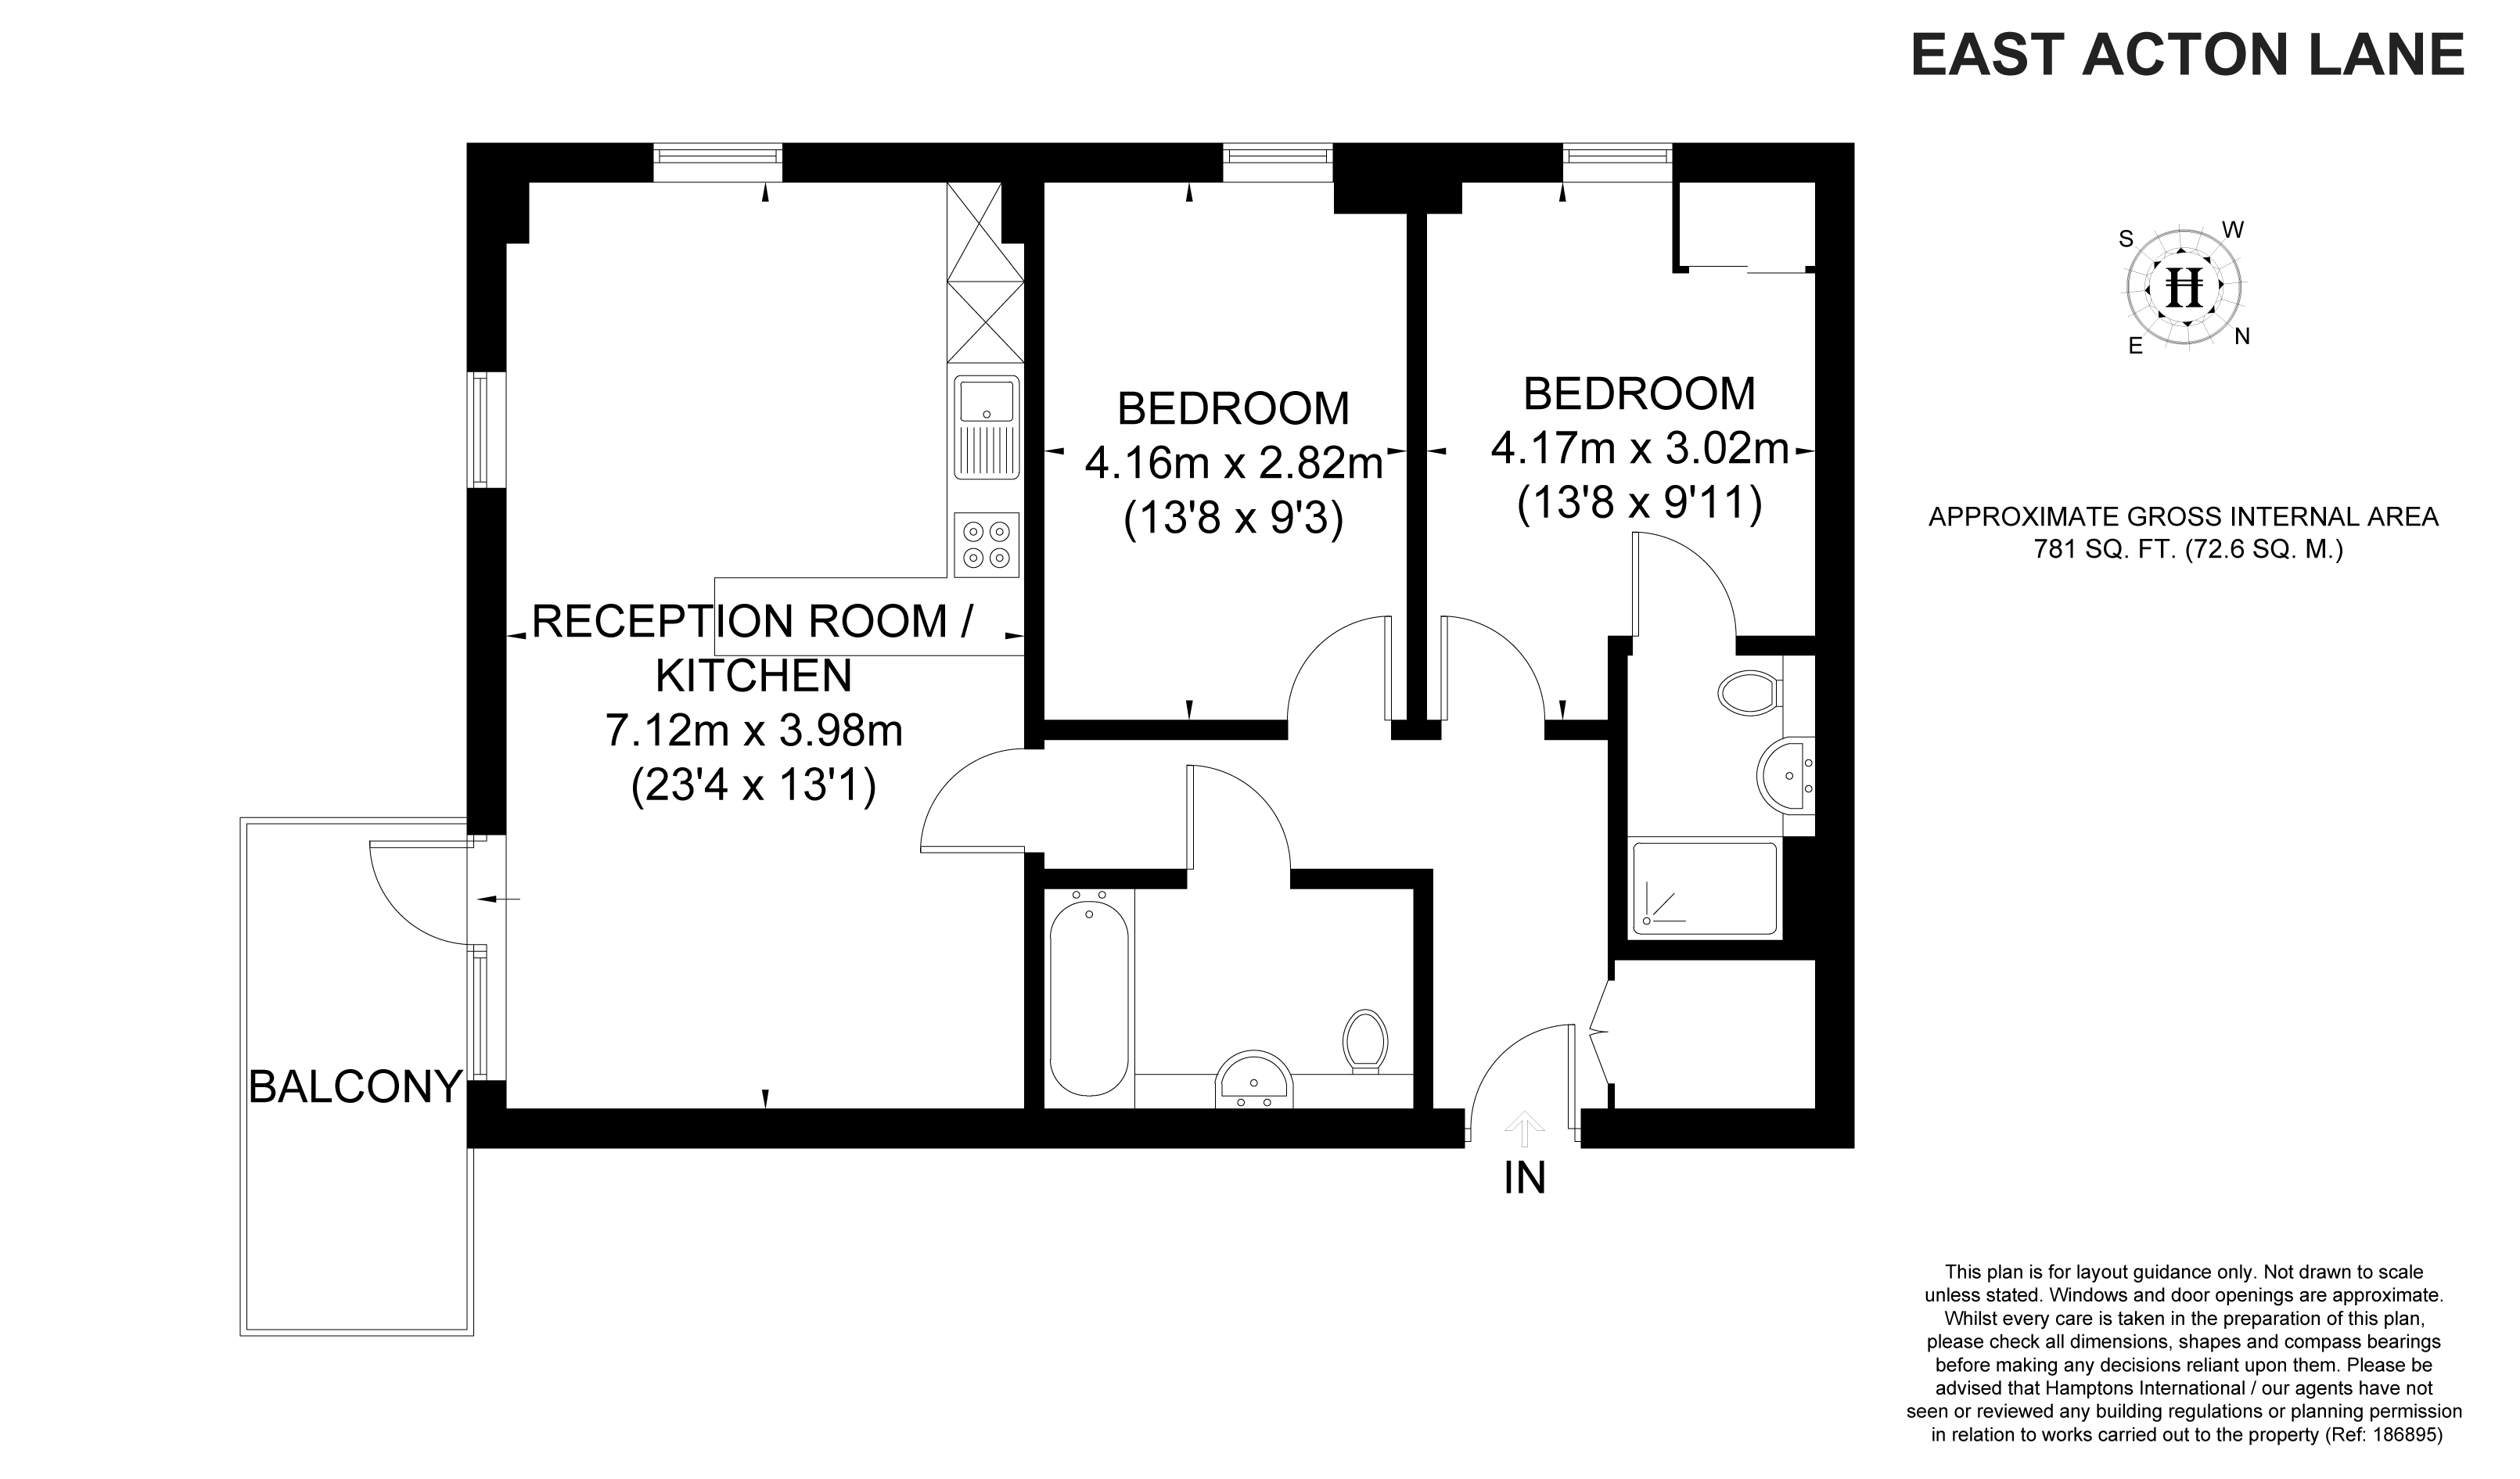 2 Bed Flat To Rent In East Acton Lane London W3